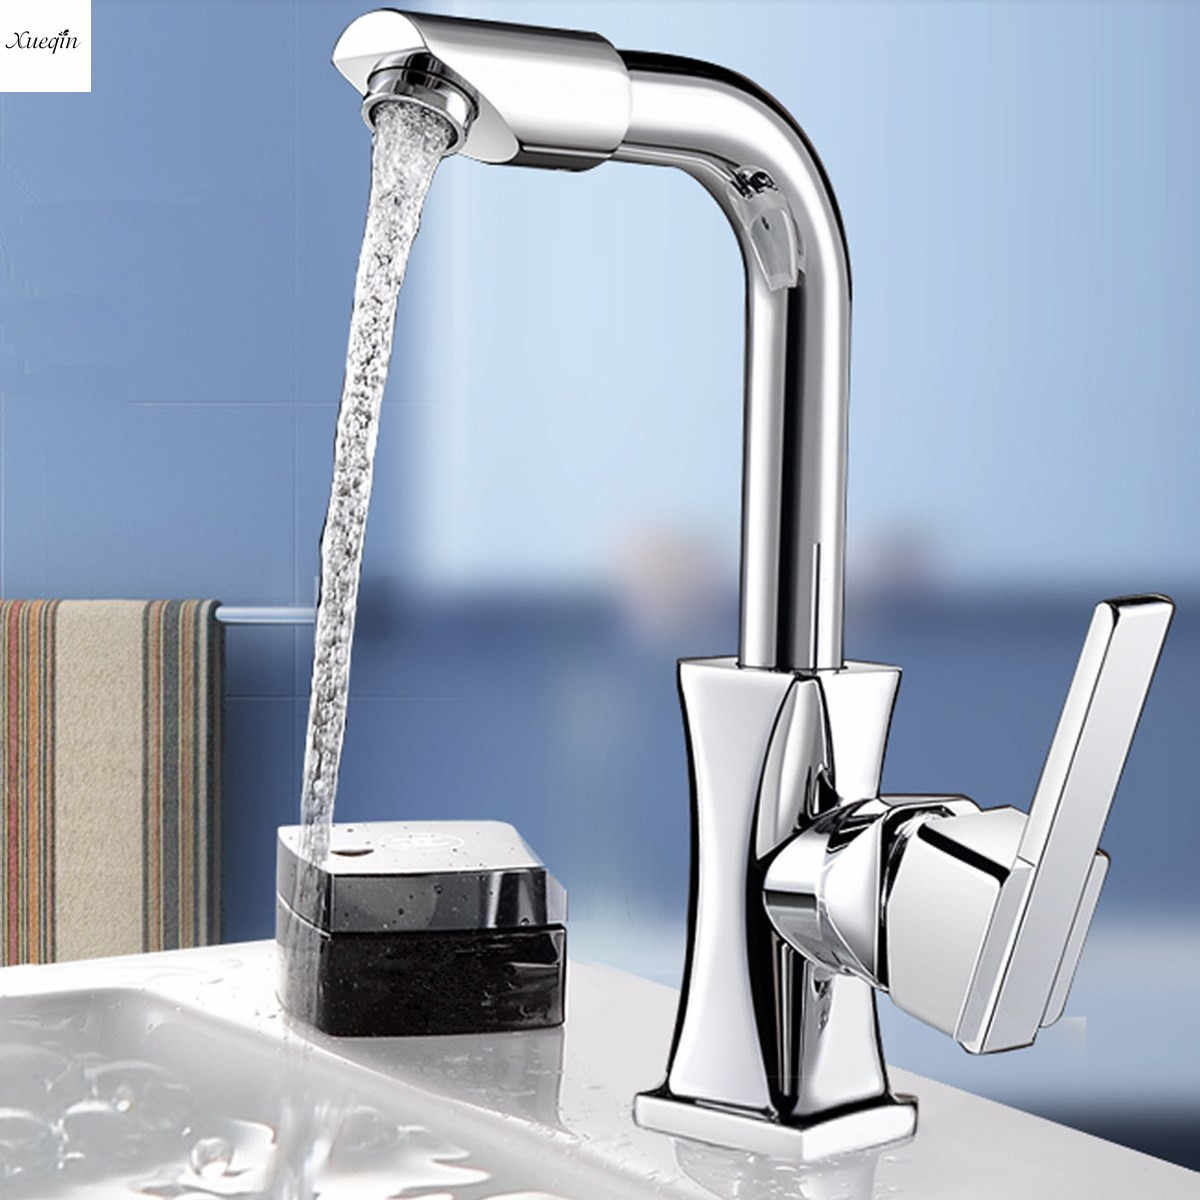 Xueqin 360 Rotation Spout Modern Kitchen Mixer Tap Brass Polished Single Handle Wash Basin Faucet For Bathroom Deck Mounted